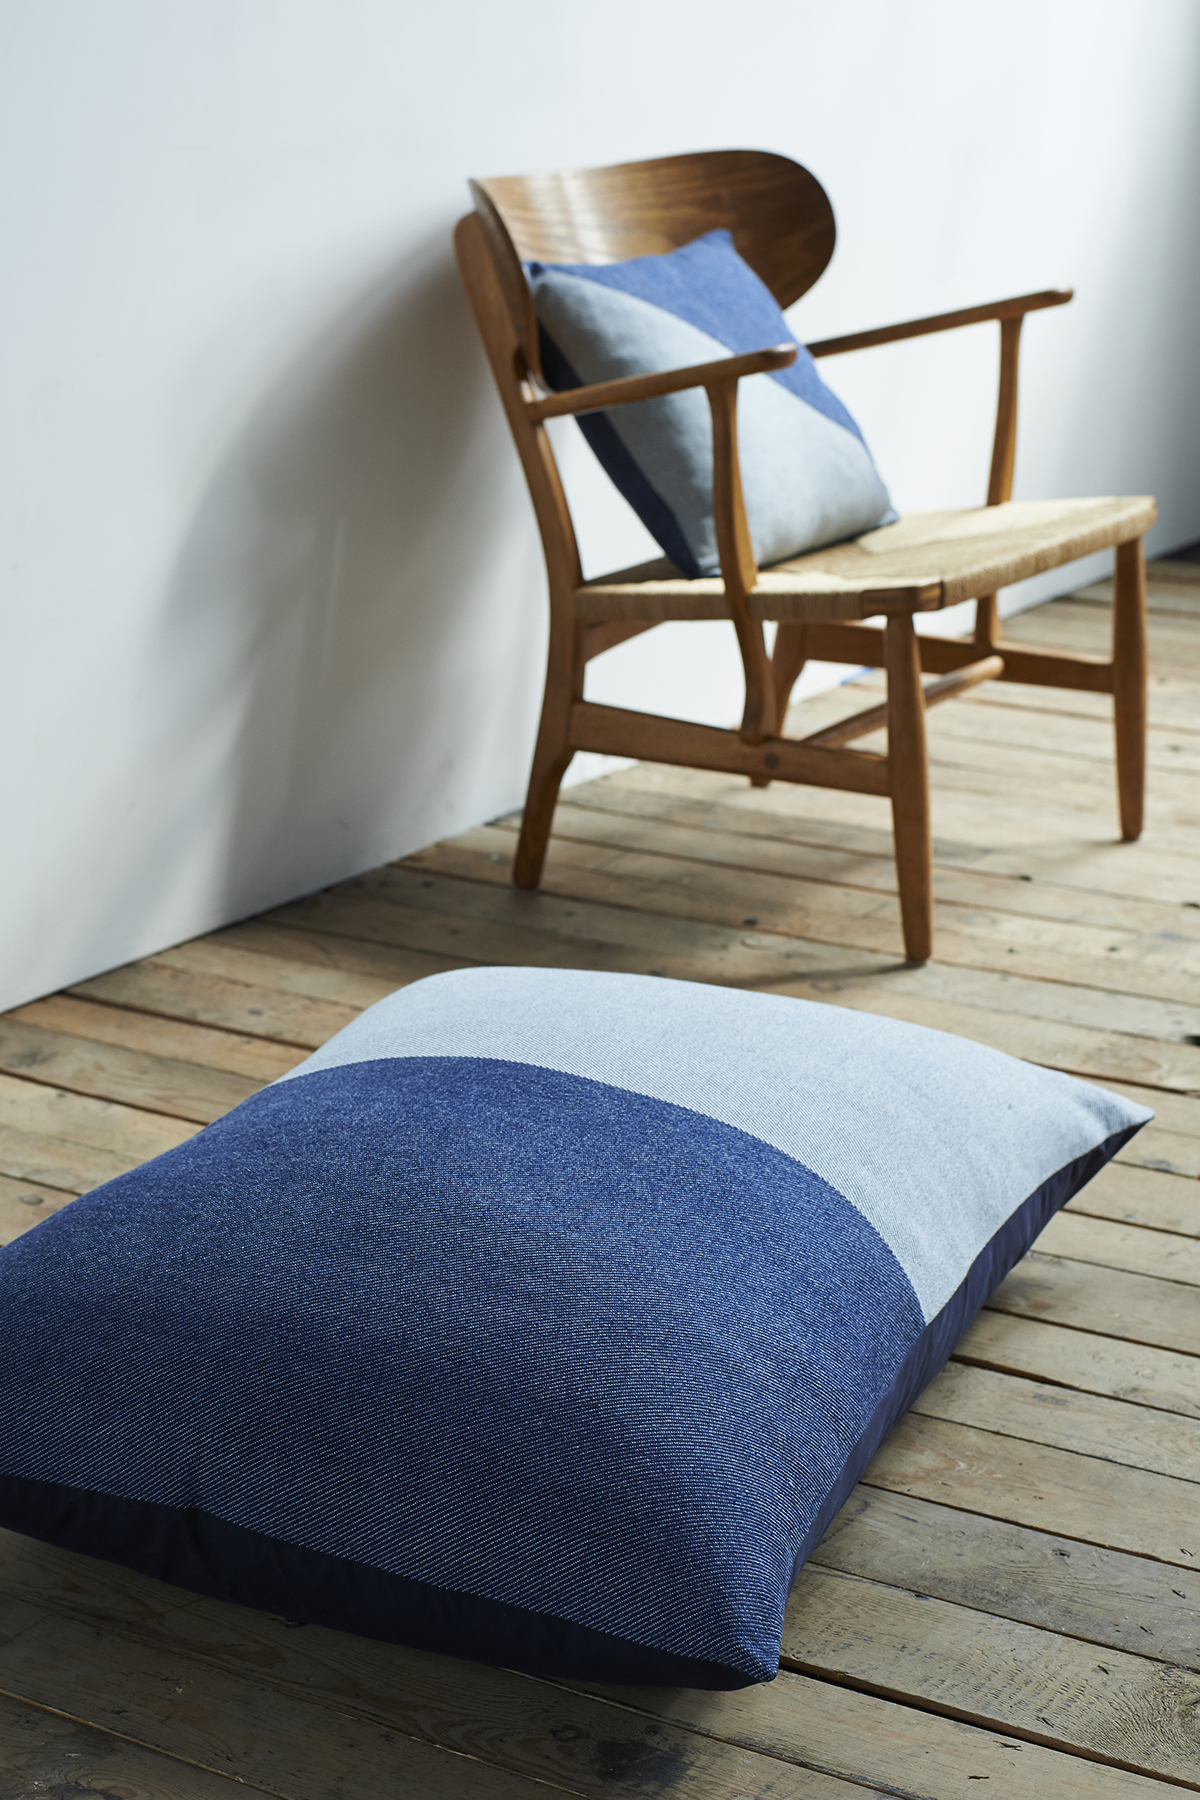 b3640aeed270 'Lane x London Cloth' Indigo Cotton Floor Cushion — Lane